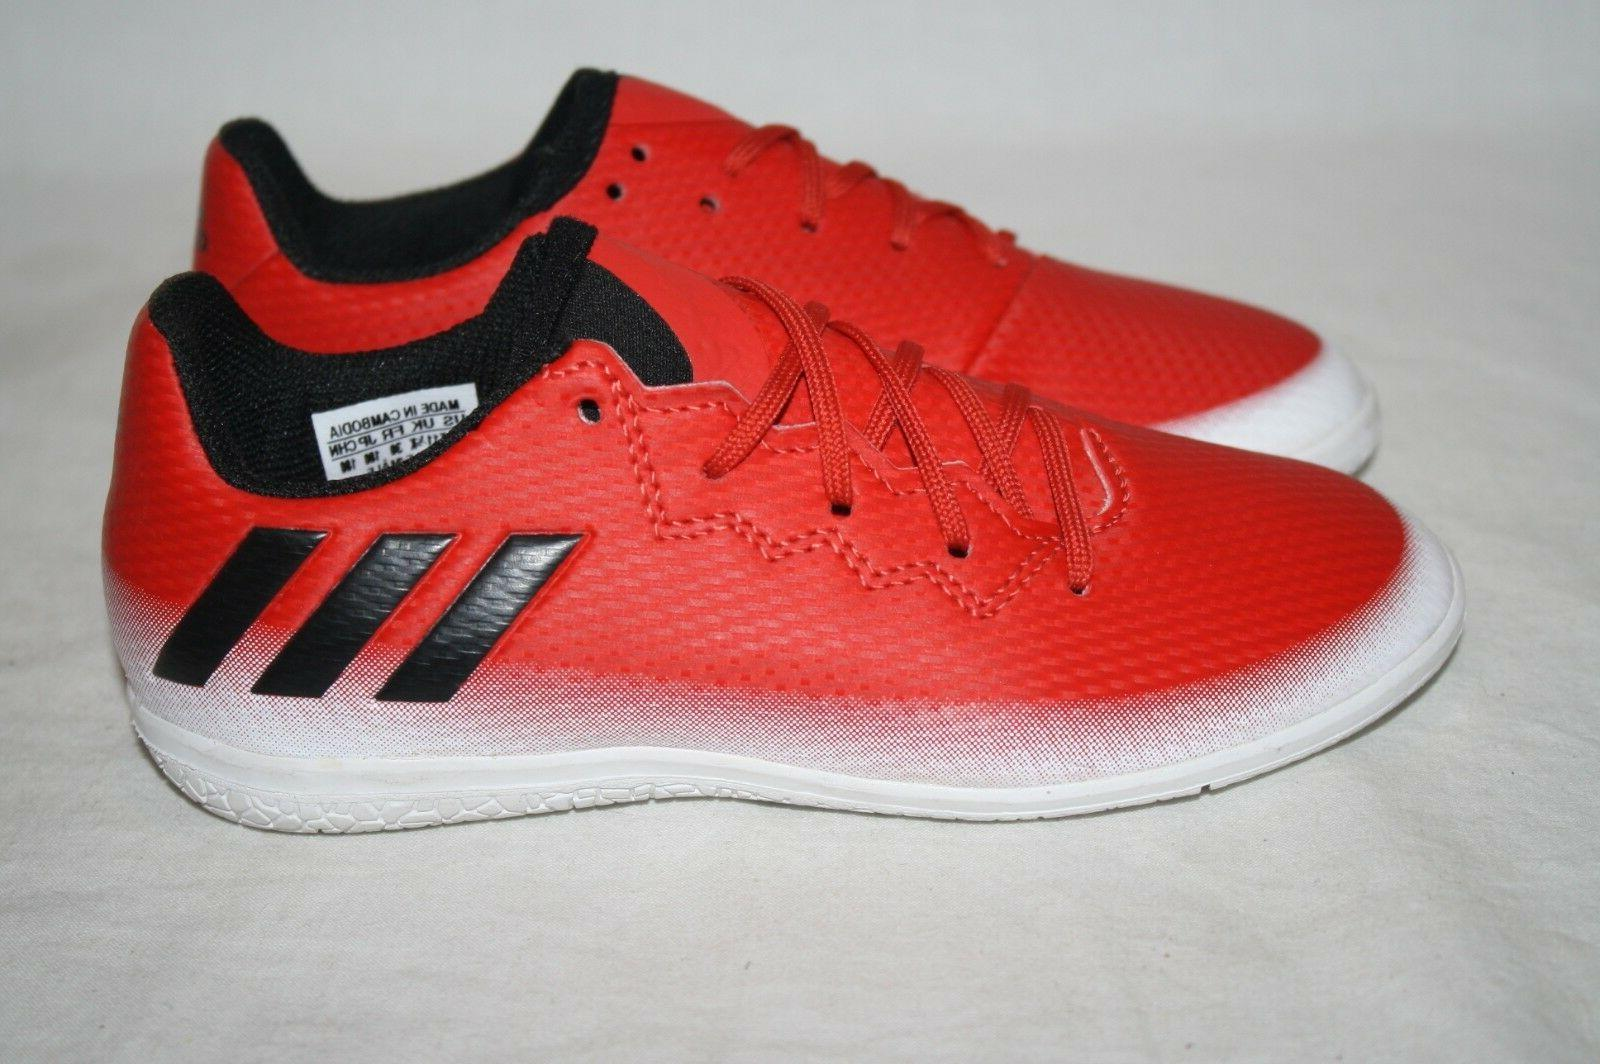 BOYS ADIDAS 16.3 RED/BLACK/WHITE SHOES - SEE LISTING FOR SIZ